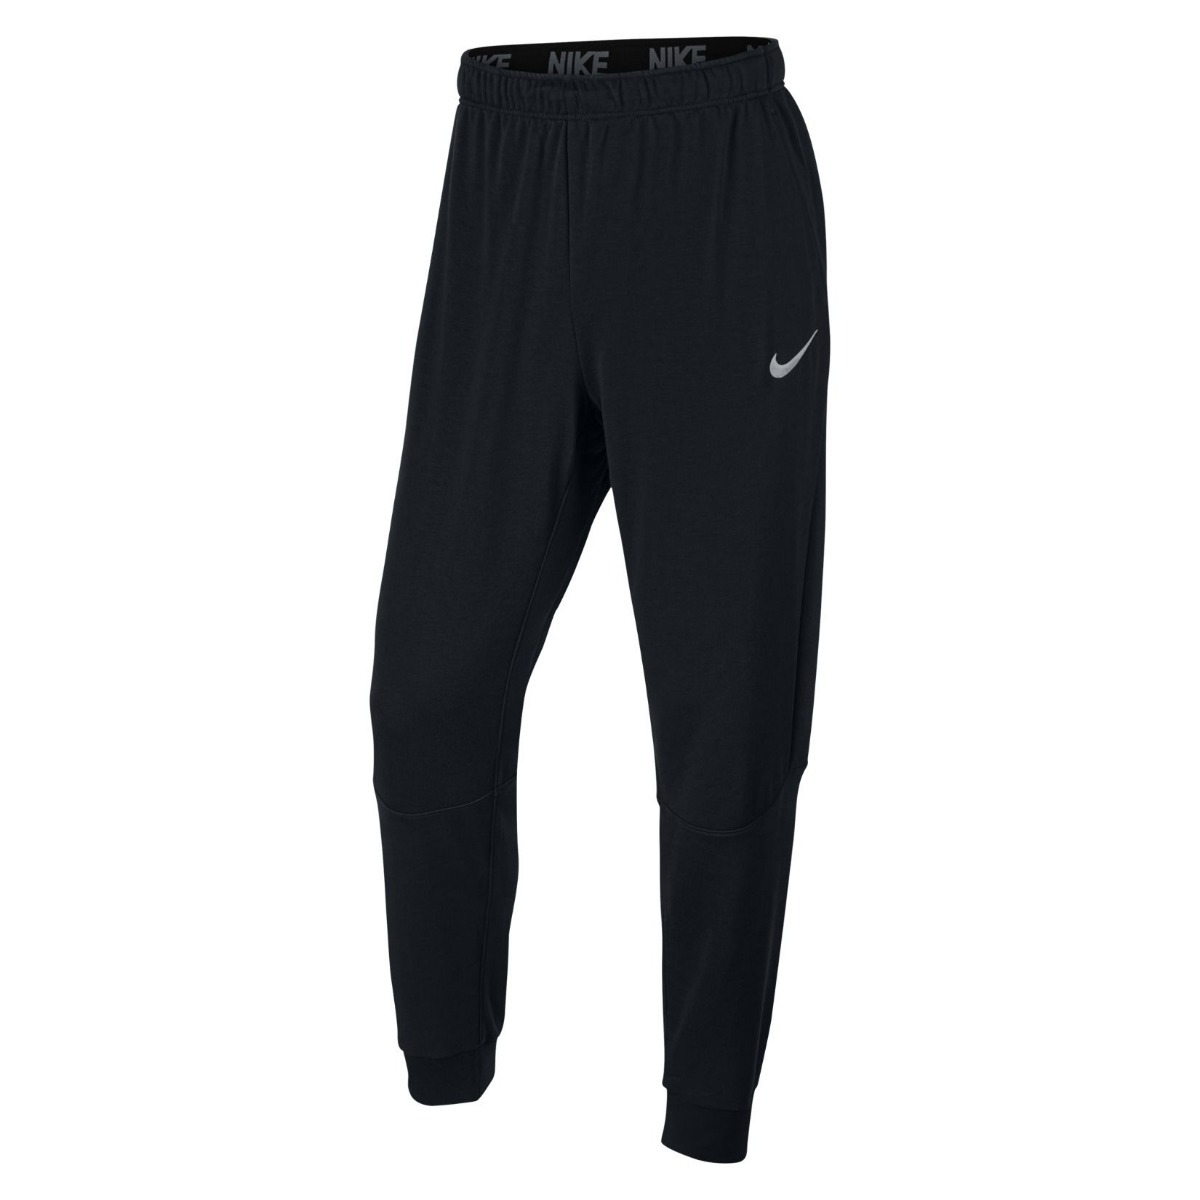 jogging nike hombre talle large. Cargando zoom. 18386c09a19